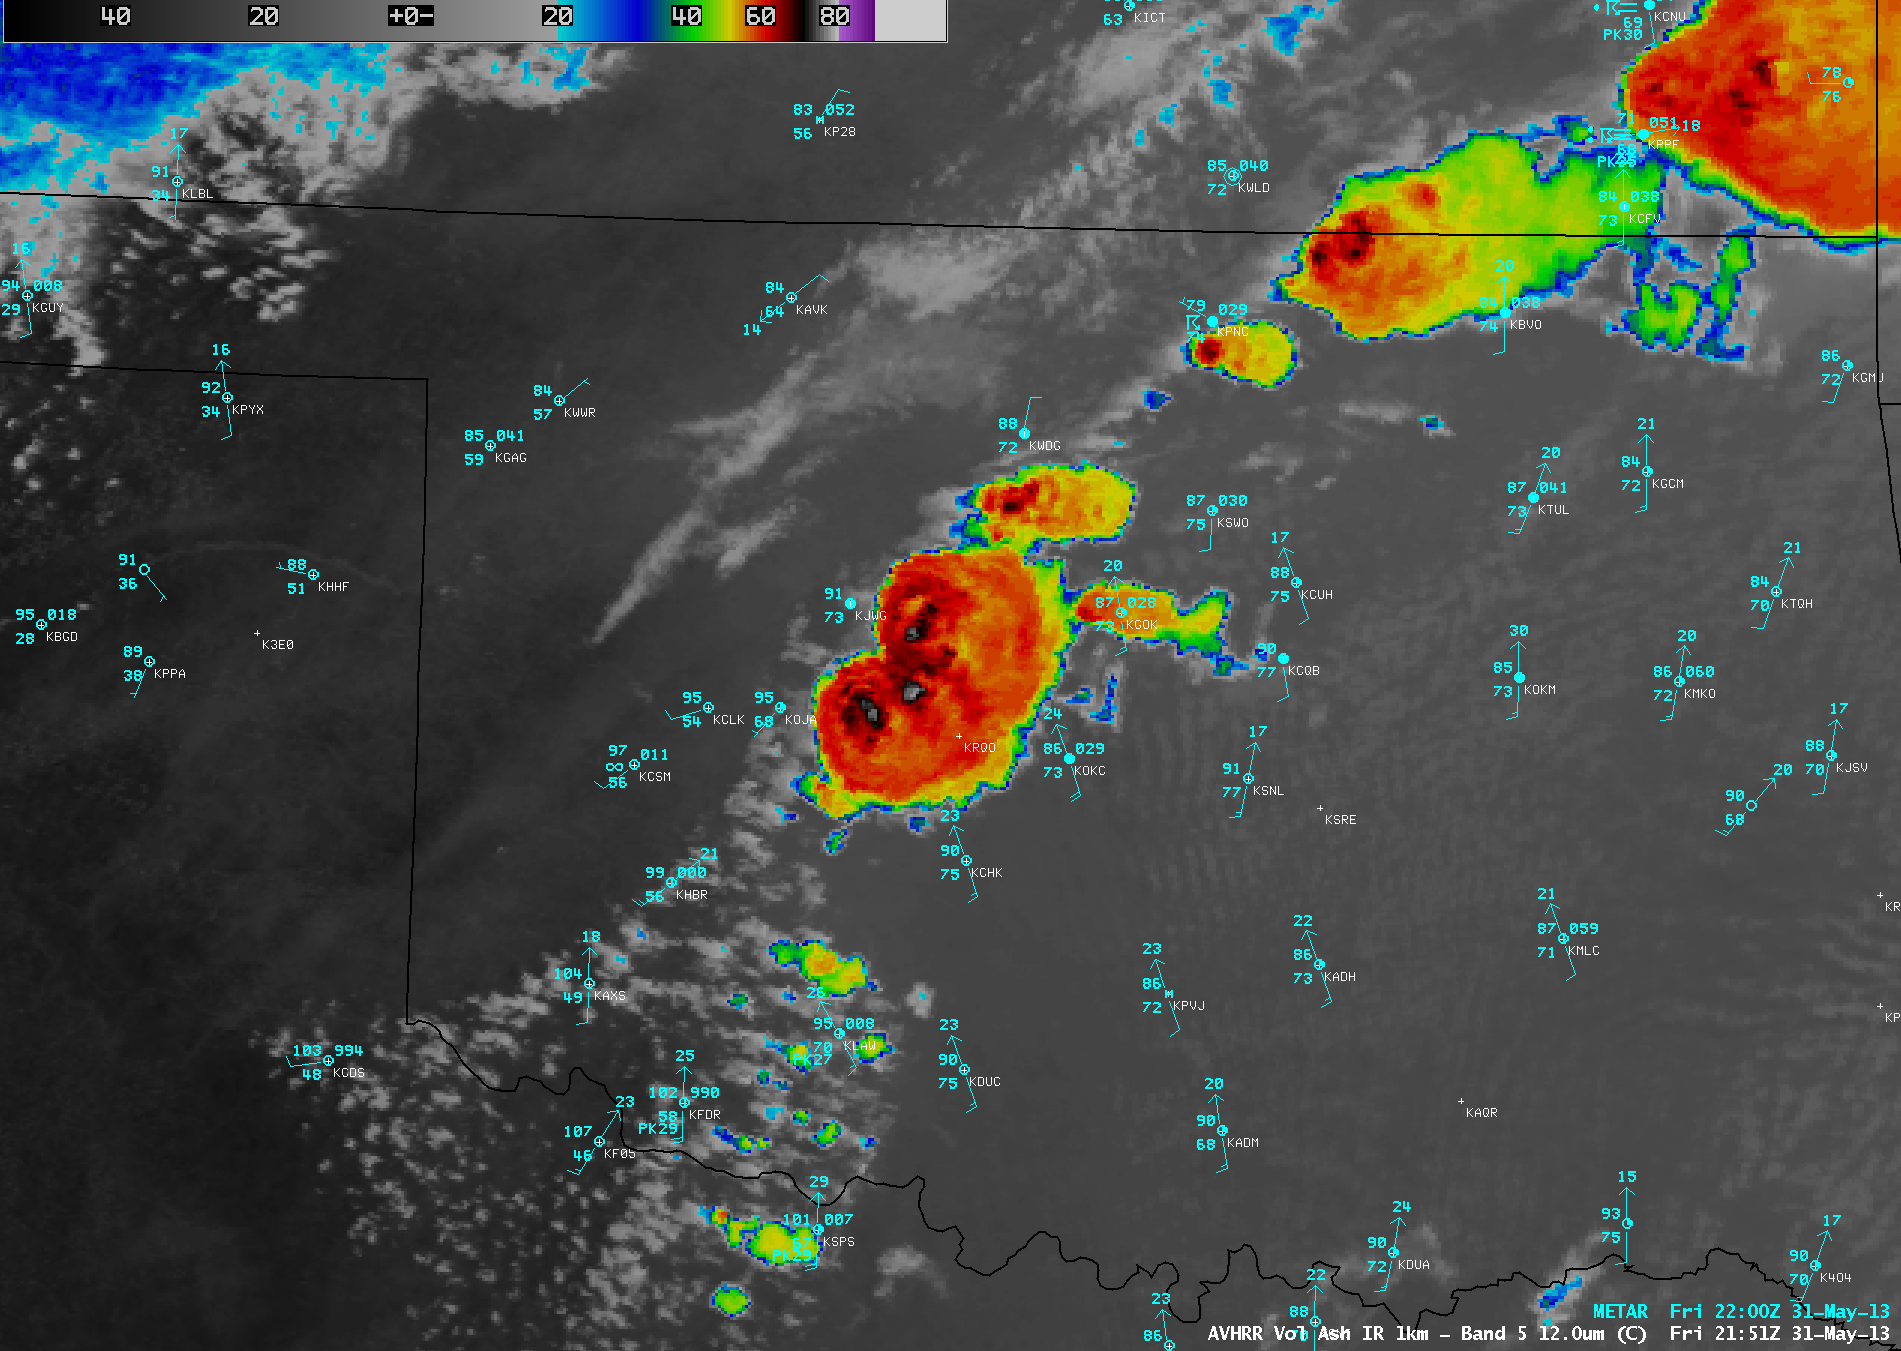 AVHRR IR satellite image from 4:51 pm CDT on May 31, 2013